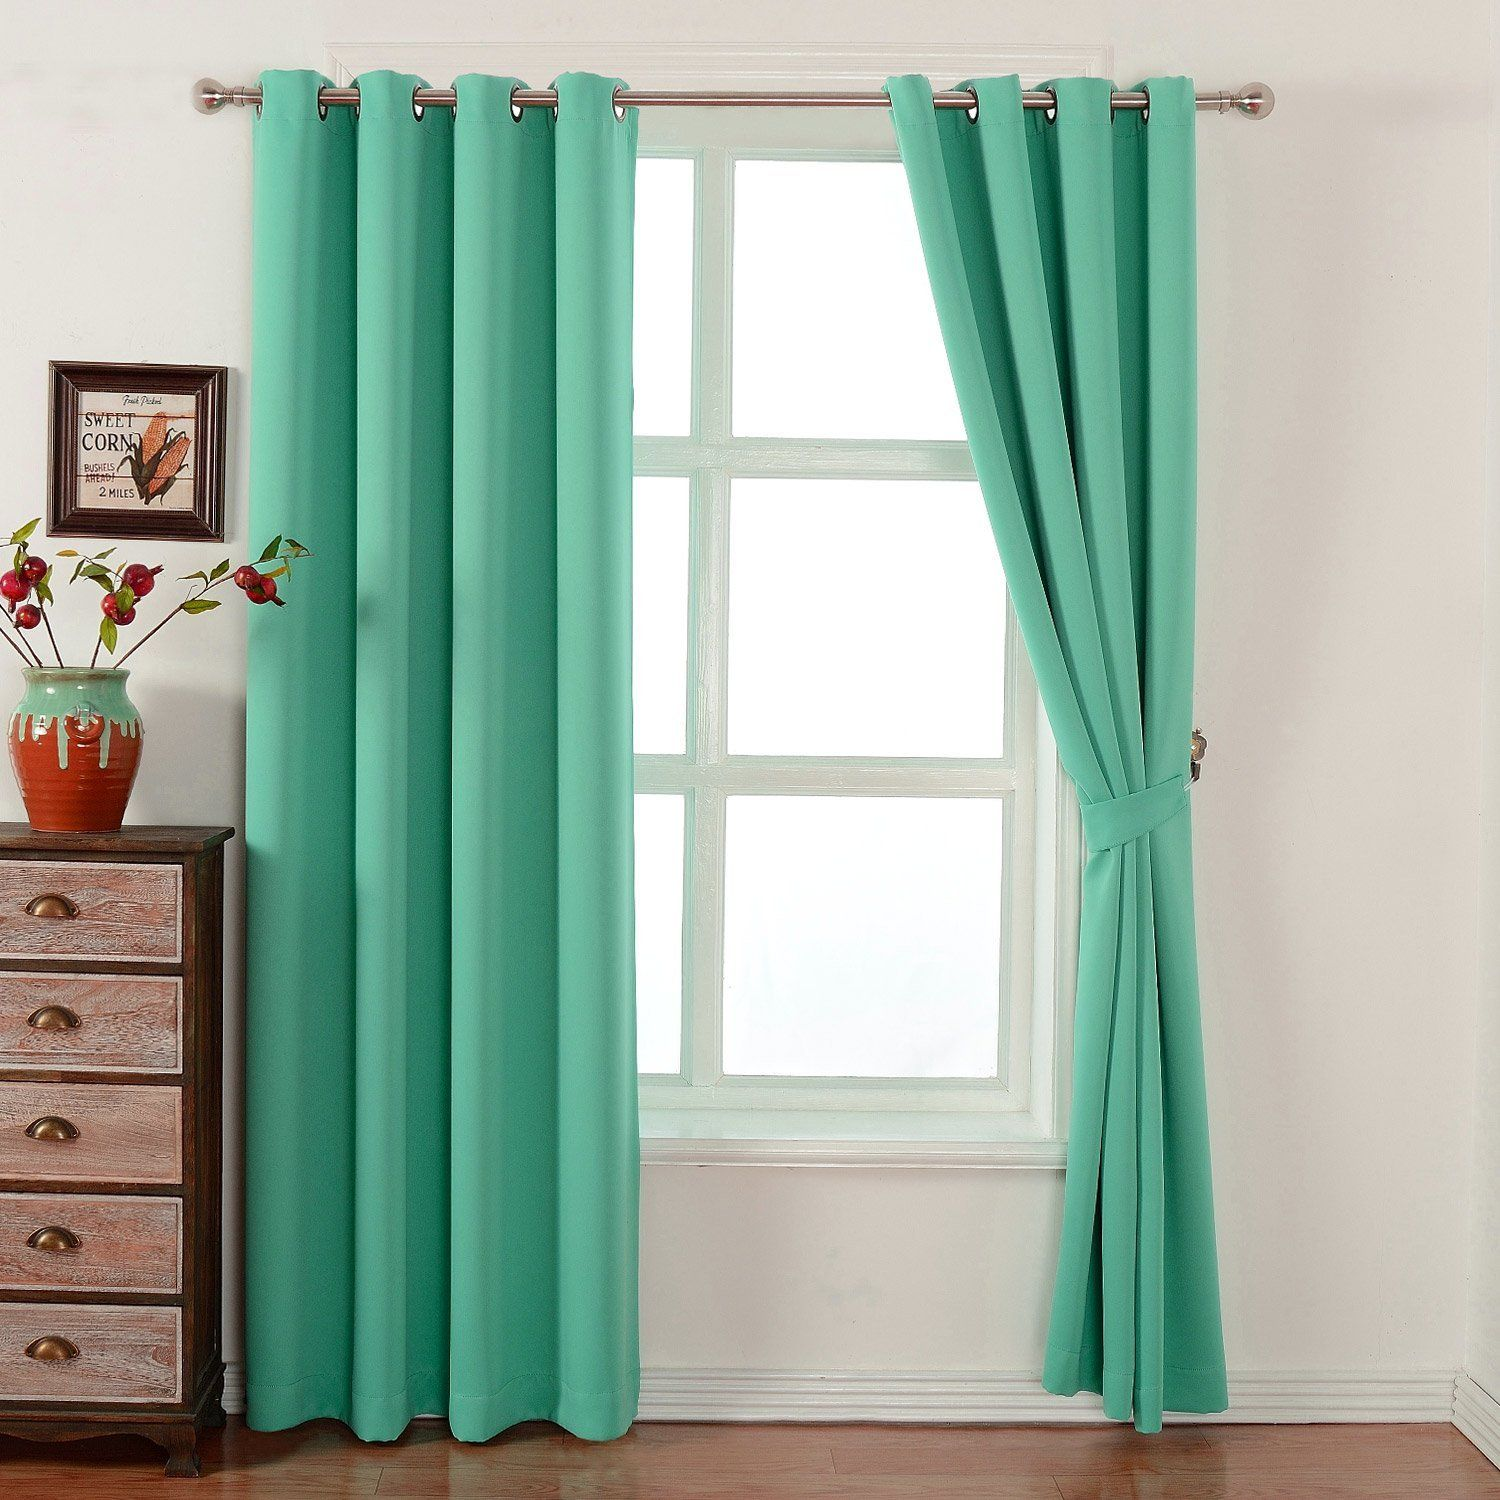 Image result for Home With Smart Curtains